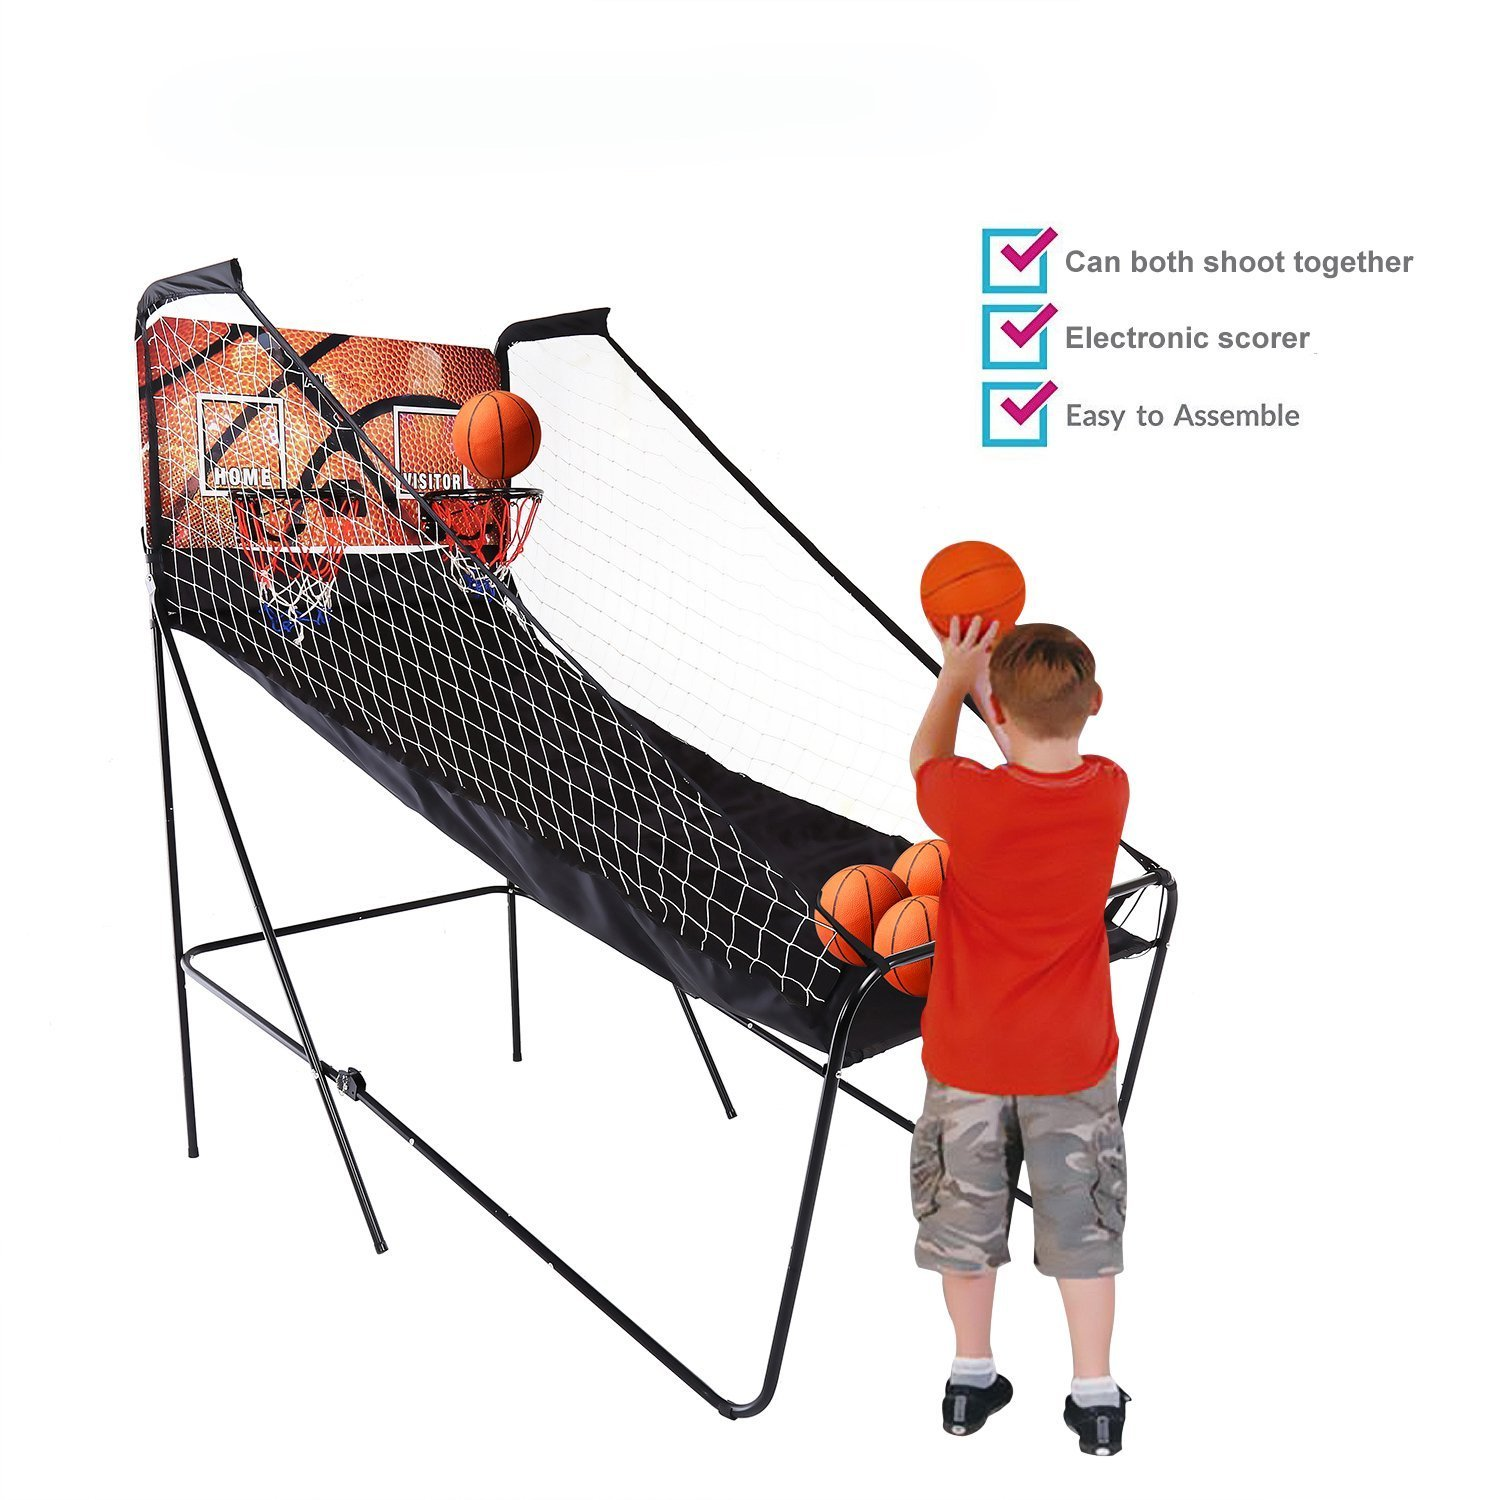 Garain Folding Home Indoor Dual Shot 2-Player 8-in-1 Electronic Basketball Arcade Game Machine Double Hoops with 5 Balls, Inflation Pump, LED Scoreboard and Timer for Kids, Teens and Adults